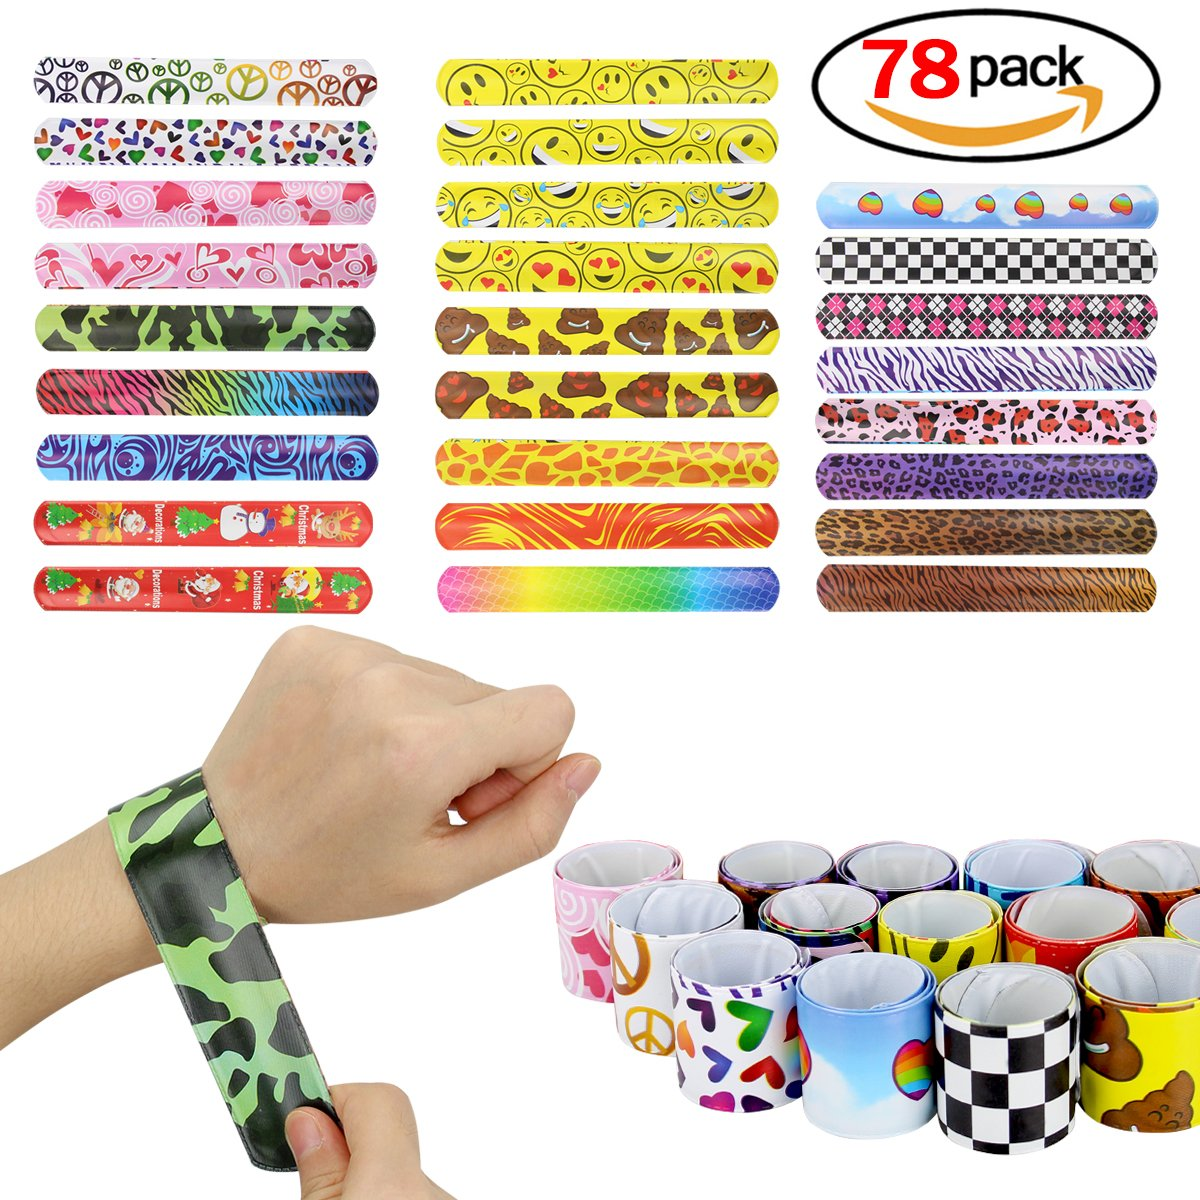 NaiCasy Bracciali Slap Bands Party Polso Bracciale Per Kids Party Favors 78pcs